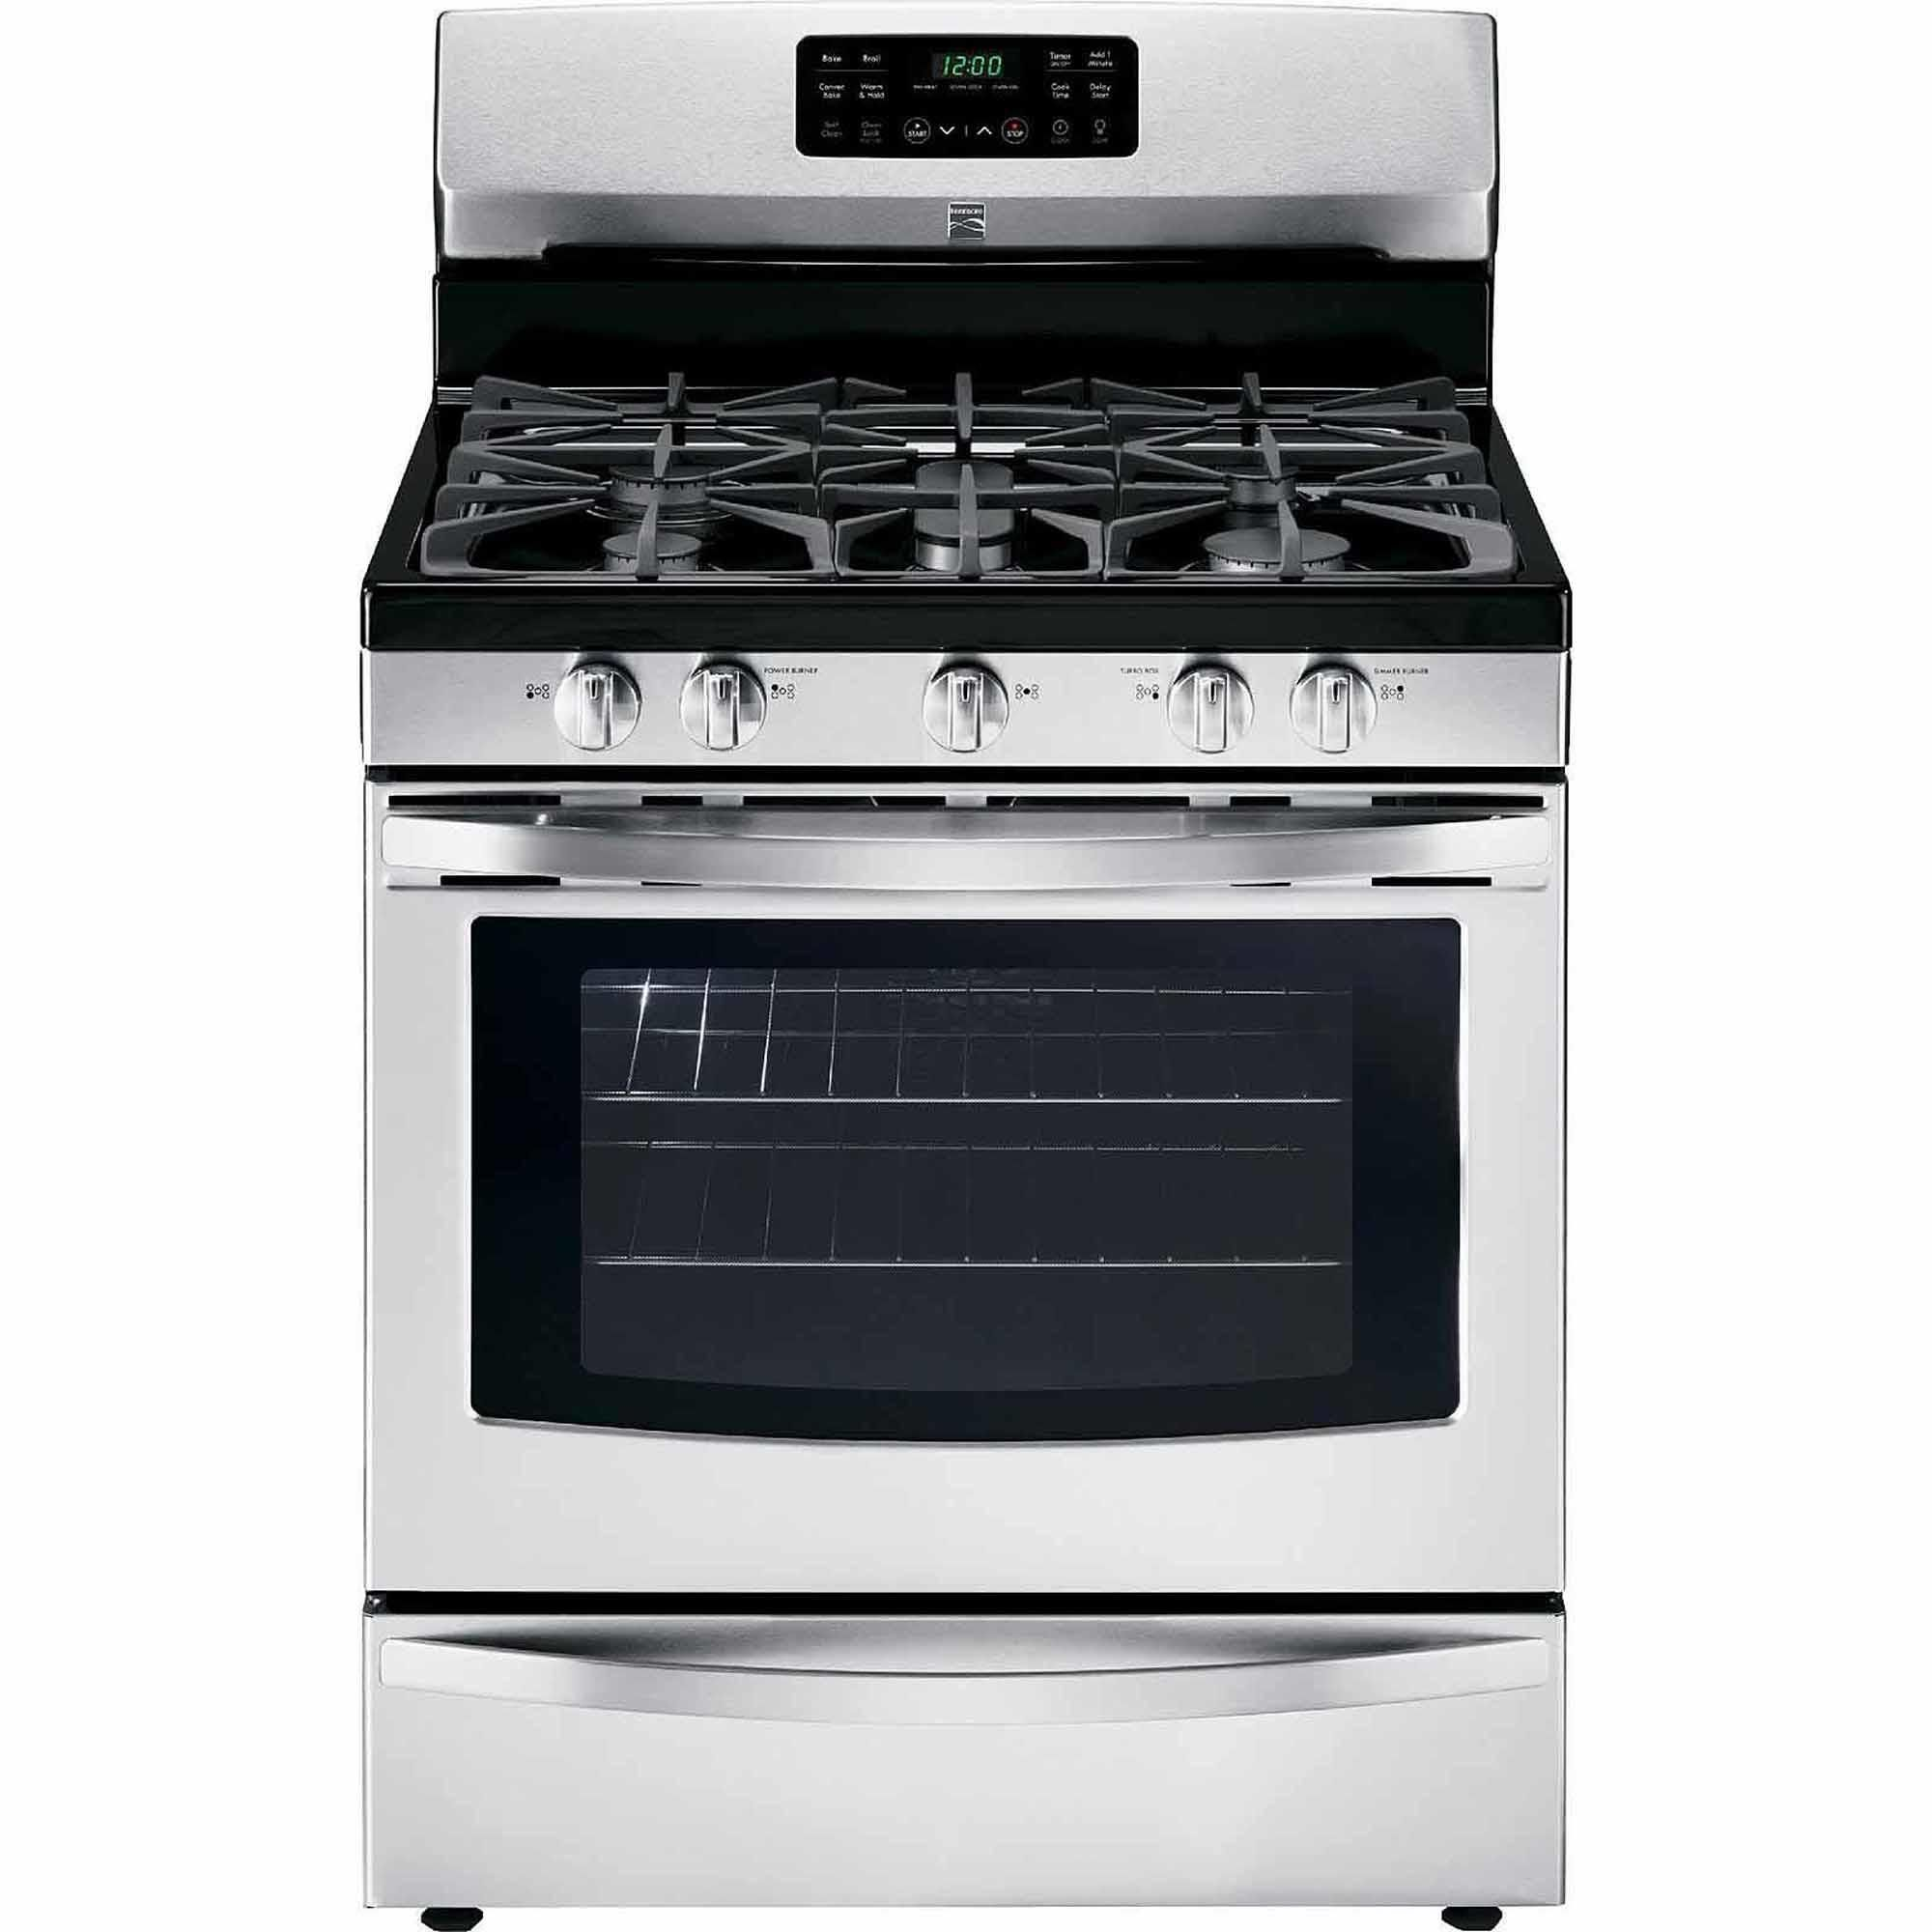 Sears Appliances Tools Apparel And More From Craftsman Kenmore Diehard And Other Leading Brands Stainless Steel Oven Gas Range Buying Appliances